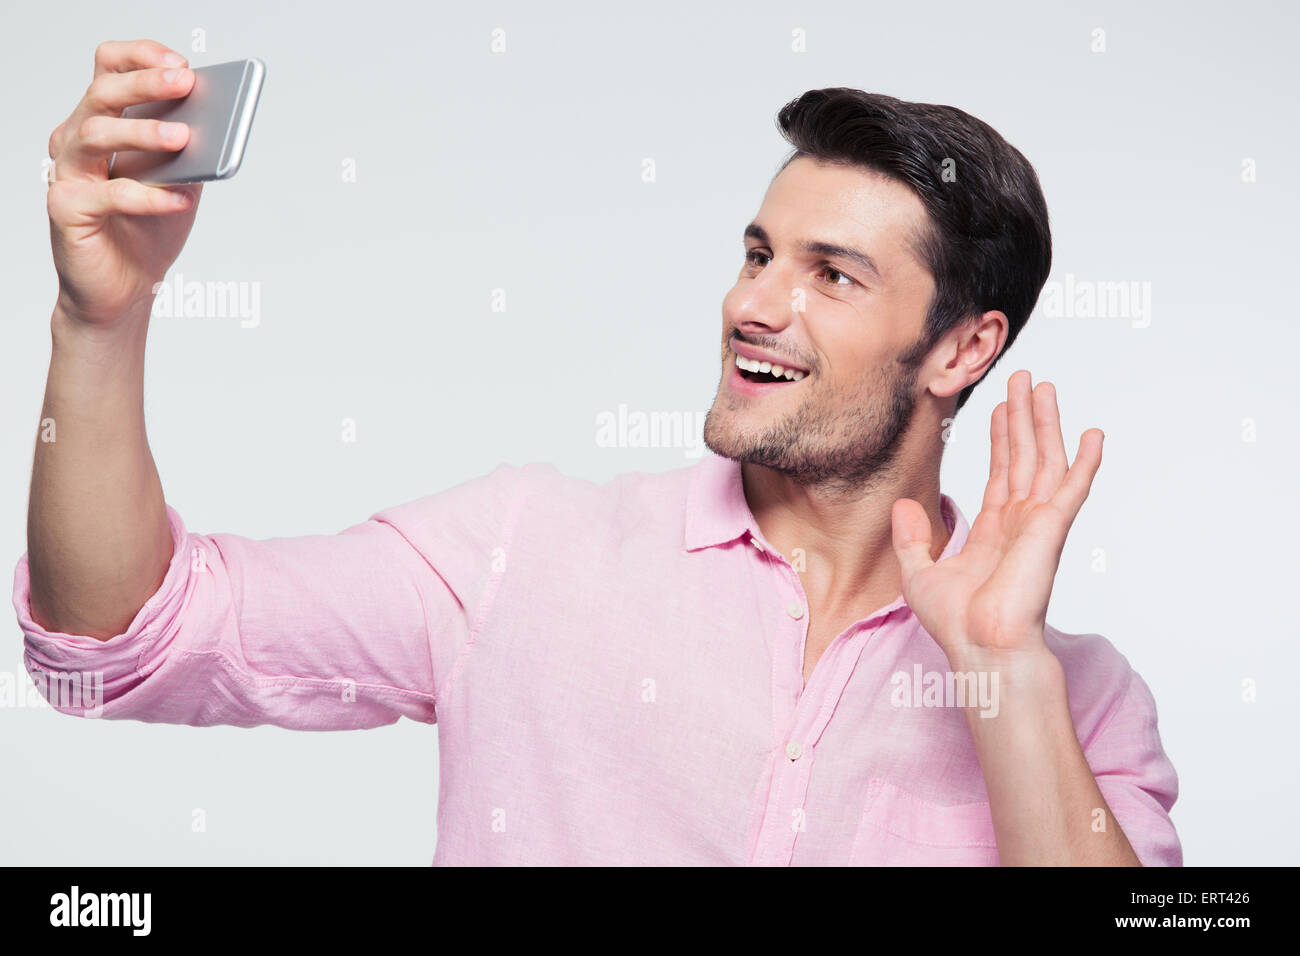 Happy businessman showing greeting sign on smartphone over gray background - Stock Image